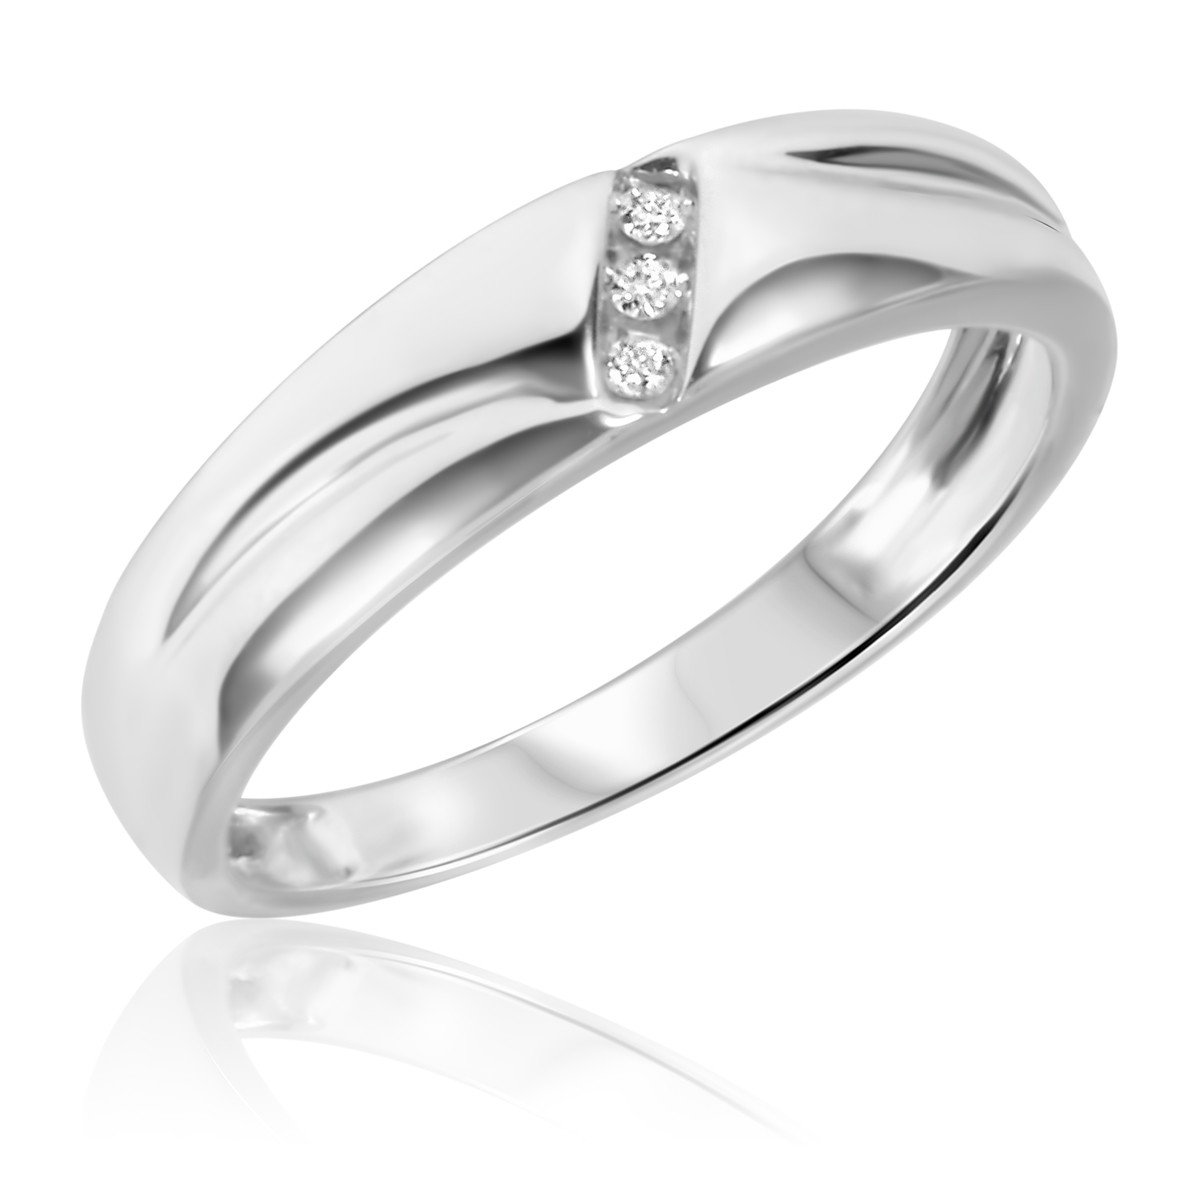 1/25 Carat T.W. Diamond Ladies' Wedding Band 14K White Gold